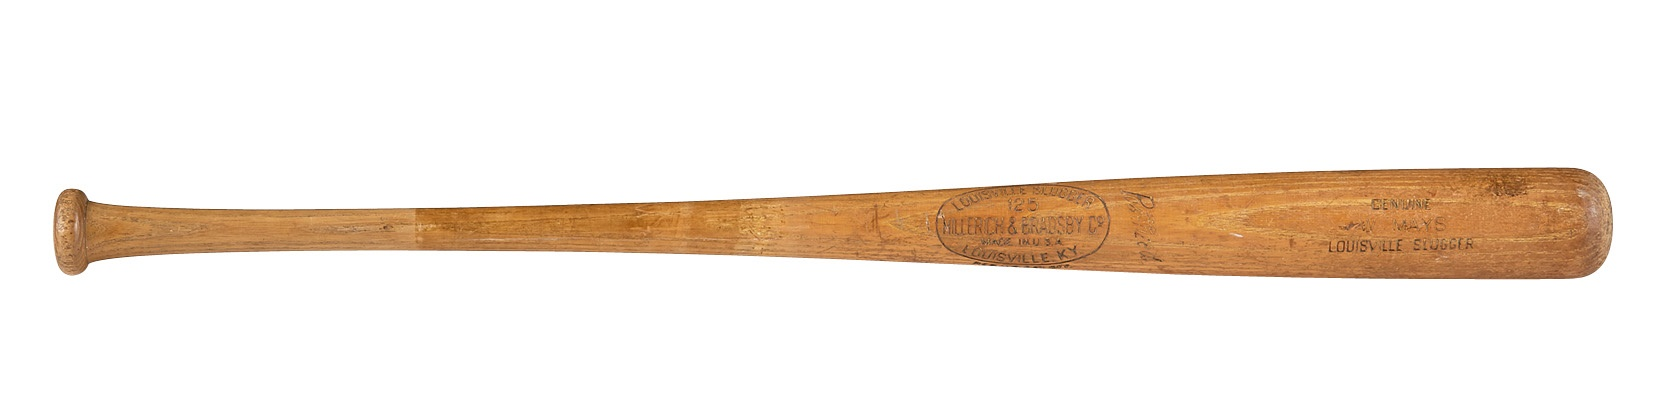 Baseball Equipment - Fall 2013 Catalog Auction